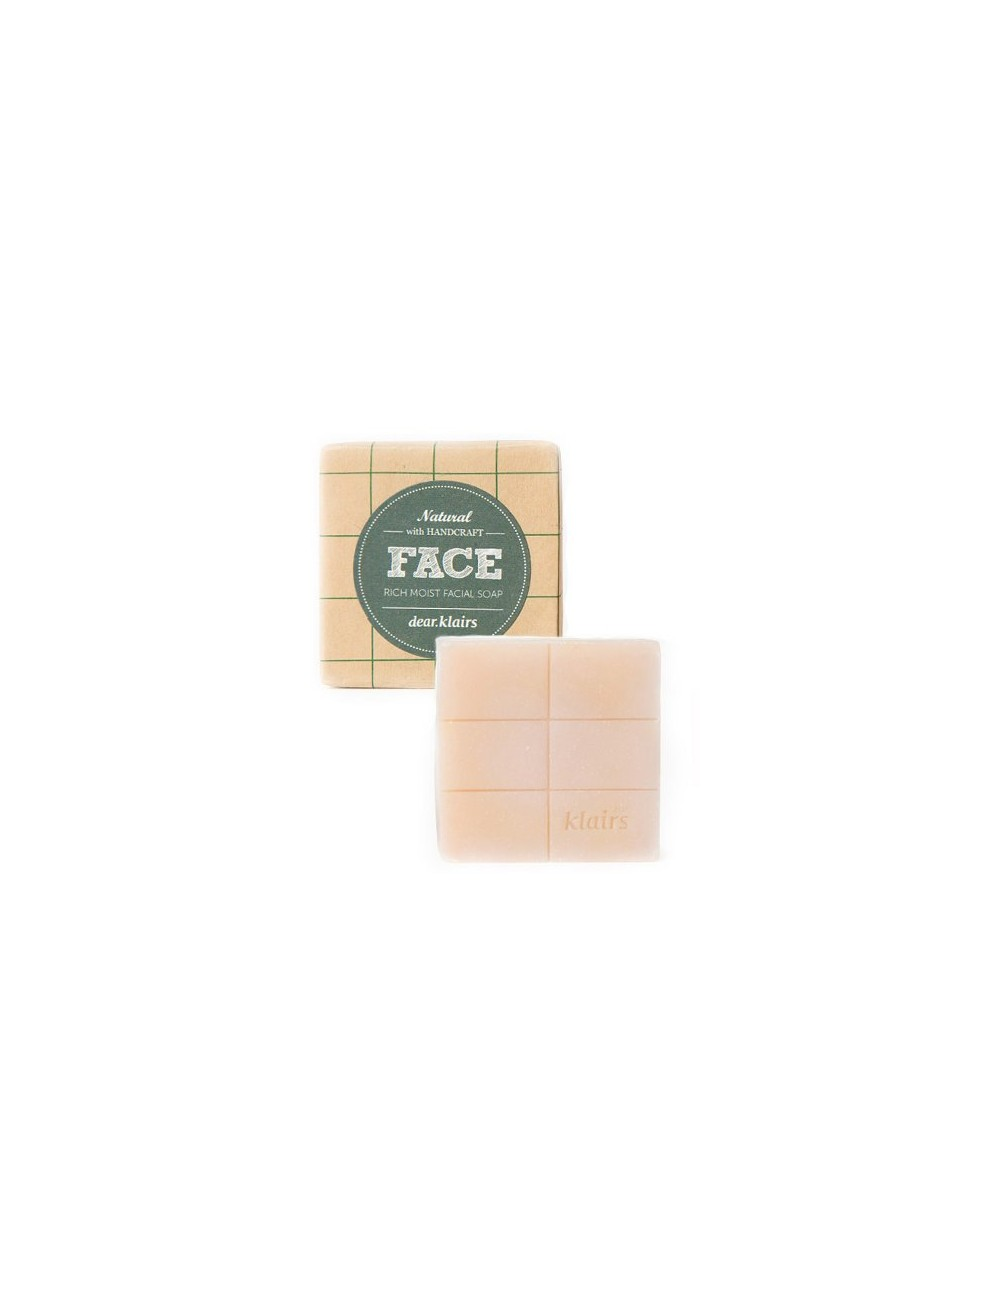 Jabón Facial para Piel Sensible Face Rich Moist Facial Soap